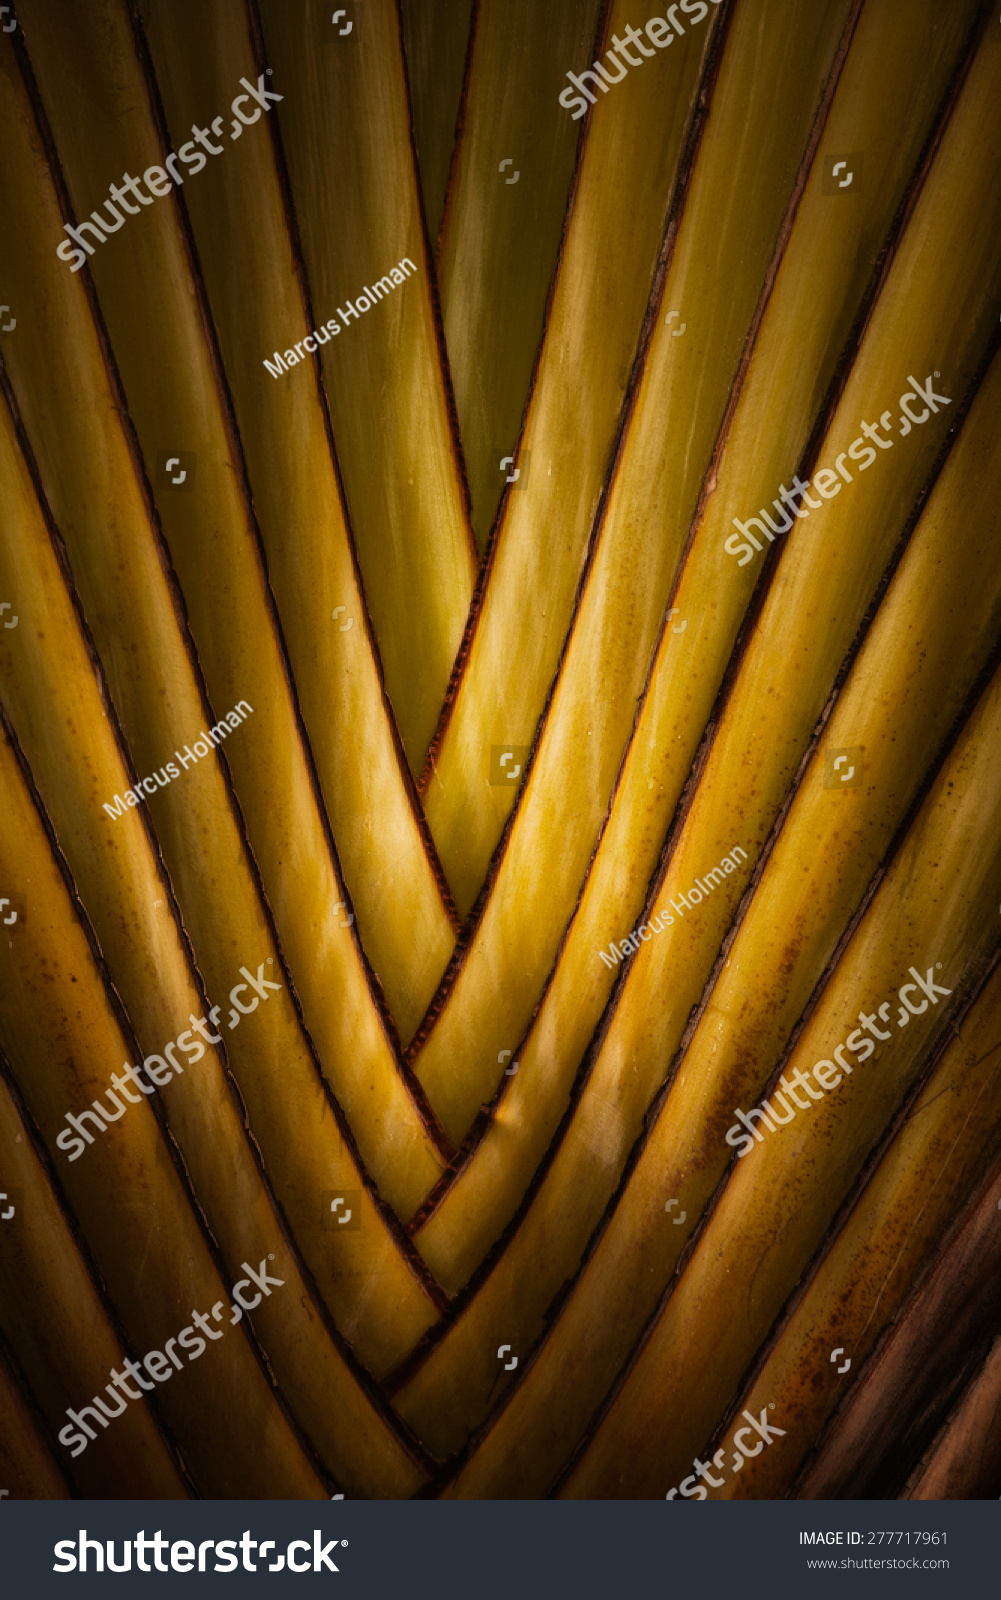 Abstract image of a poorly coiled yellow garden hose.   EZ Canvas